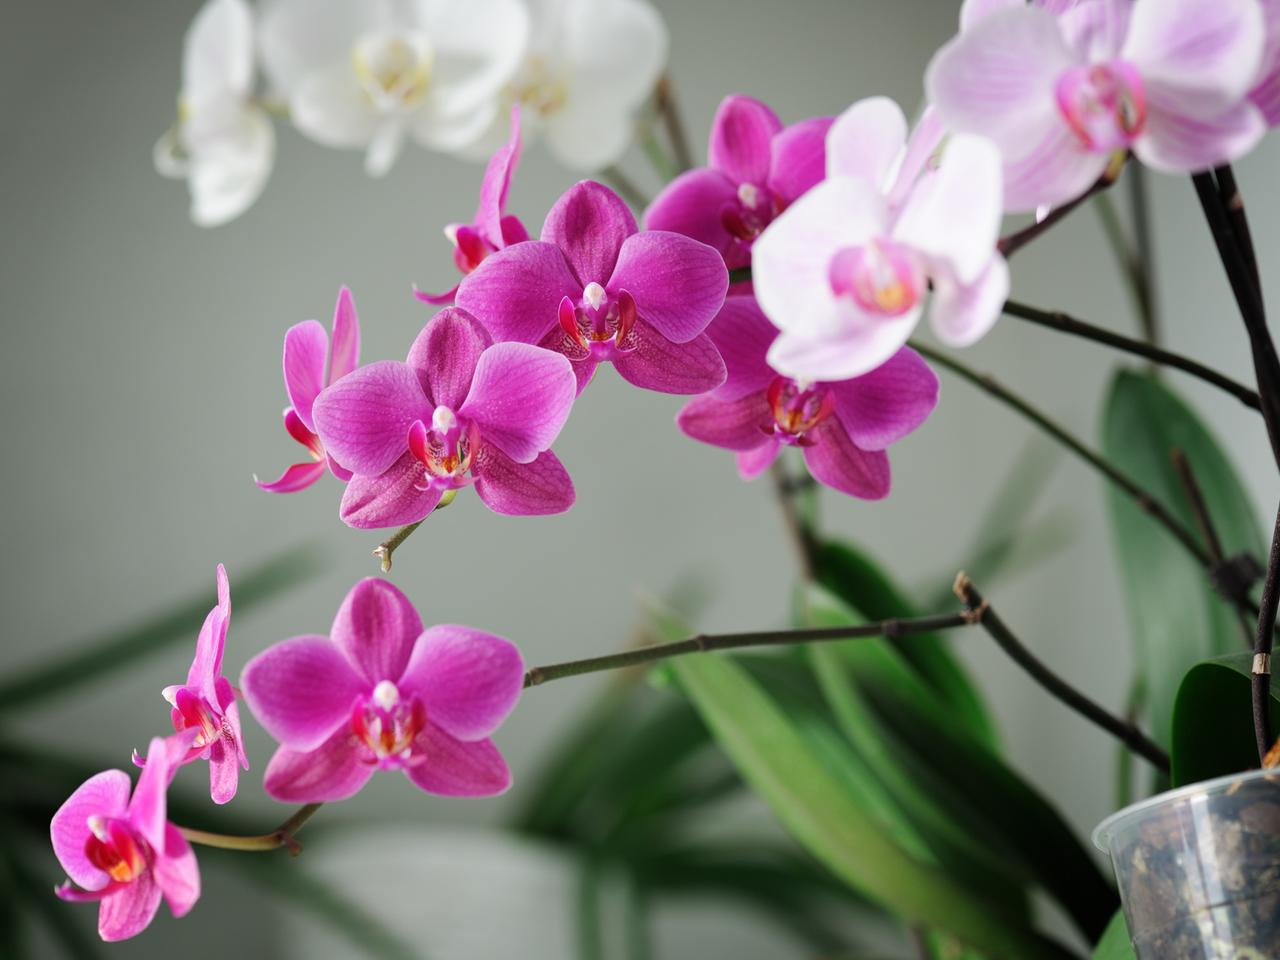 White And Pink Orchid Flowers In The House Wallpaper